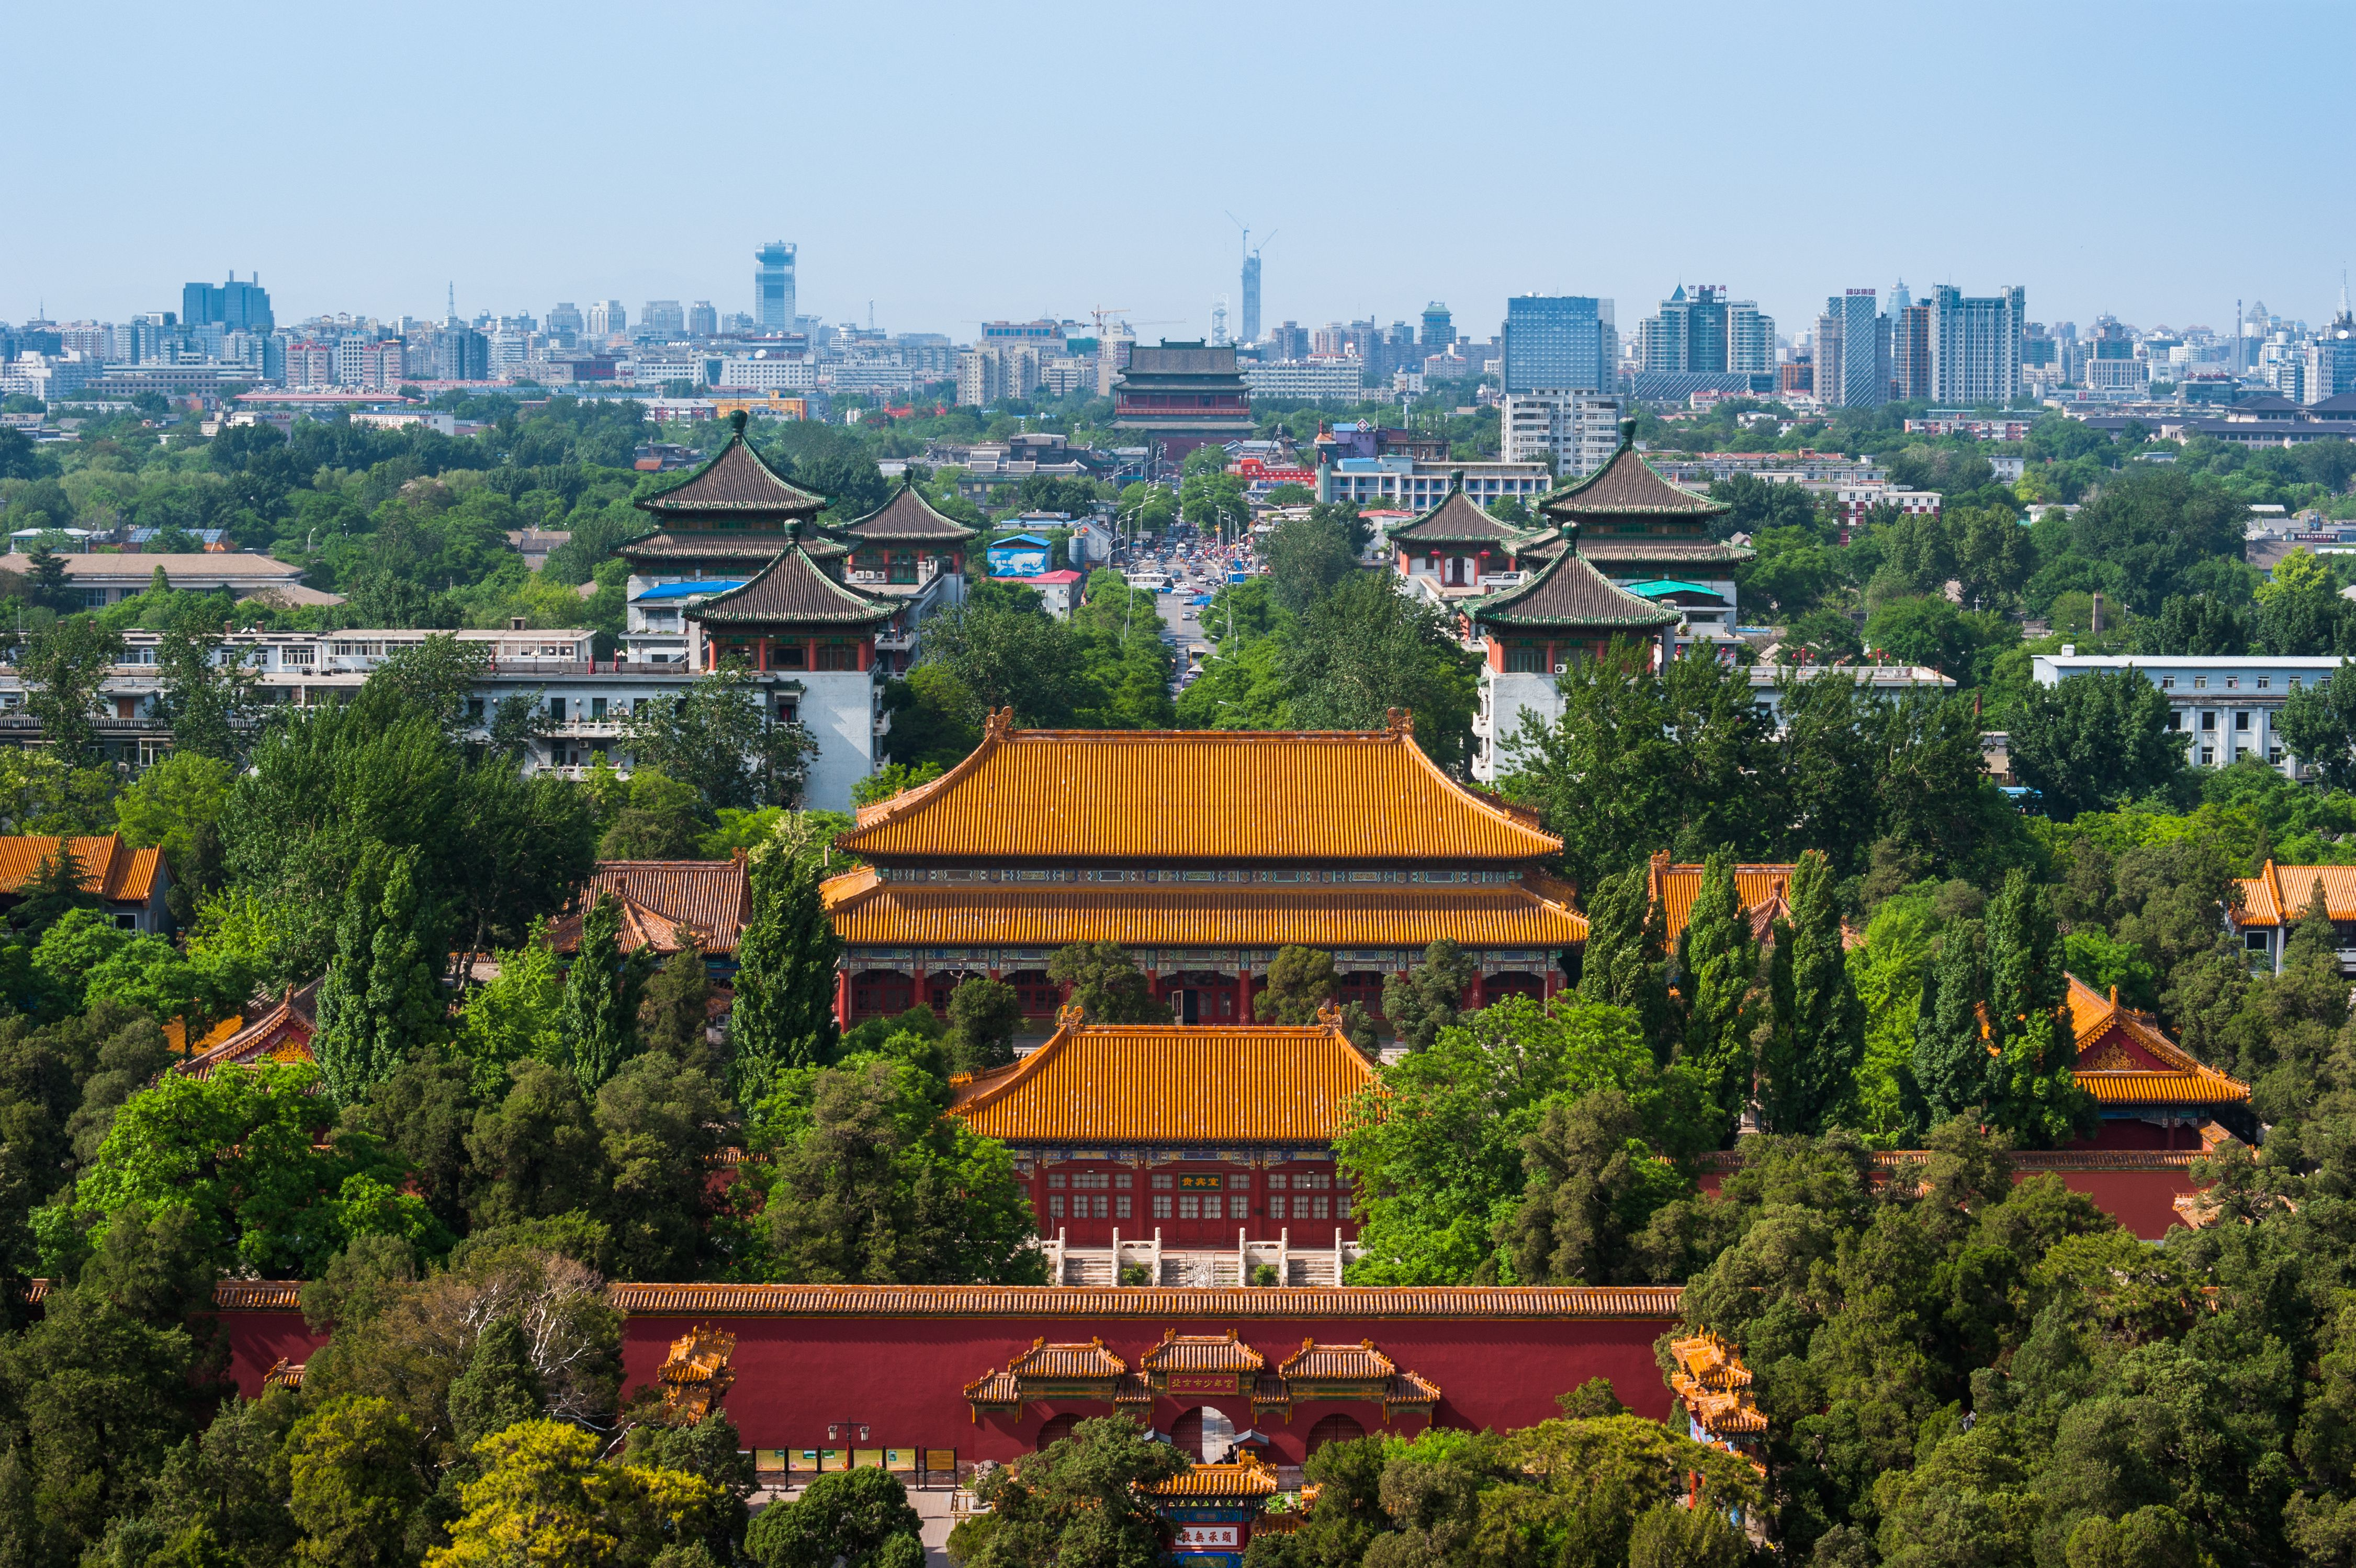 View of Beijing from hill in Jingshan Park